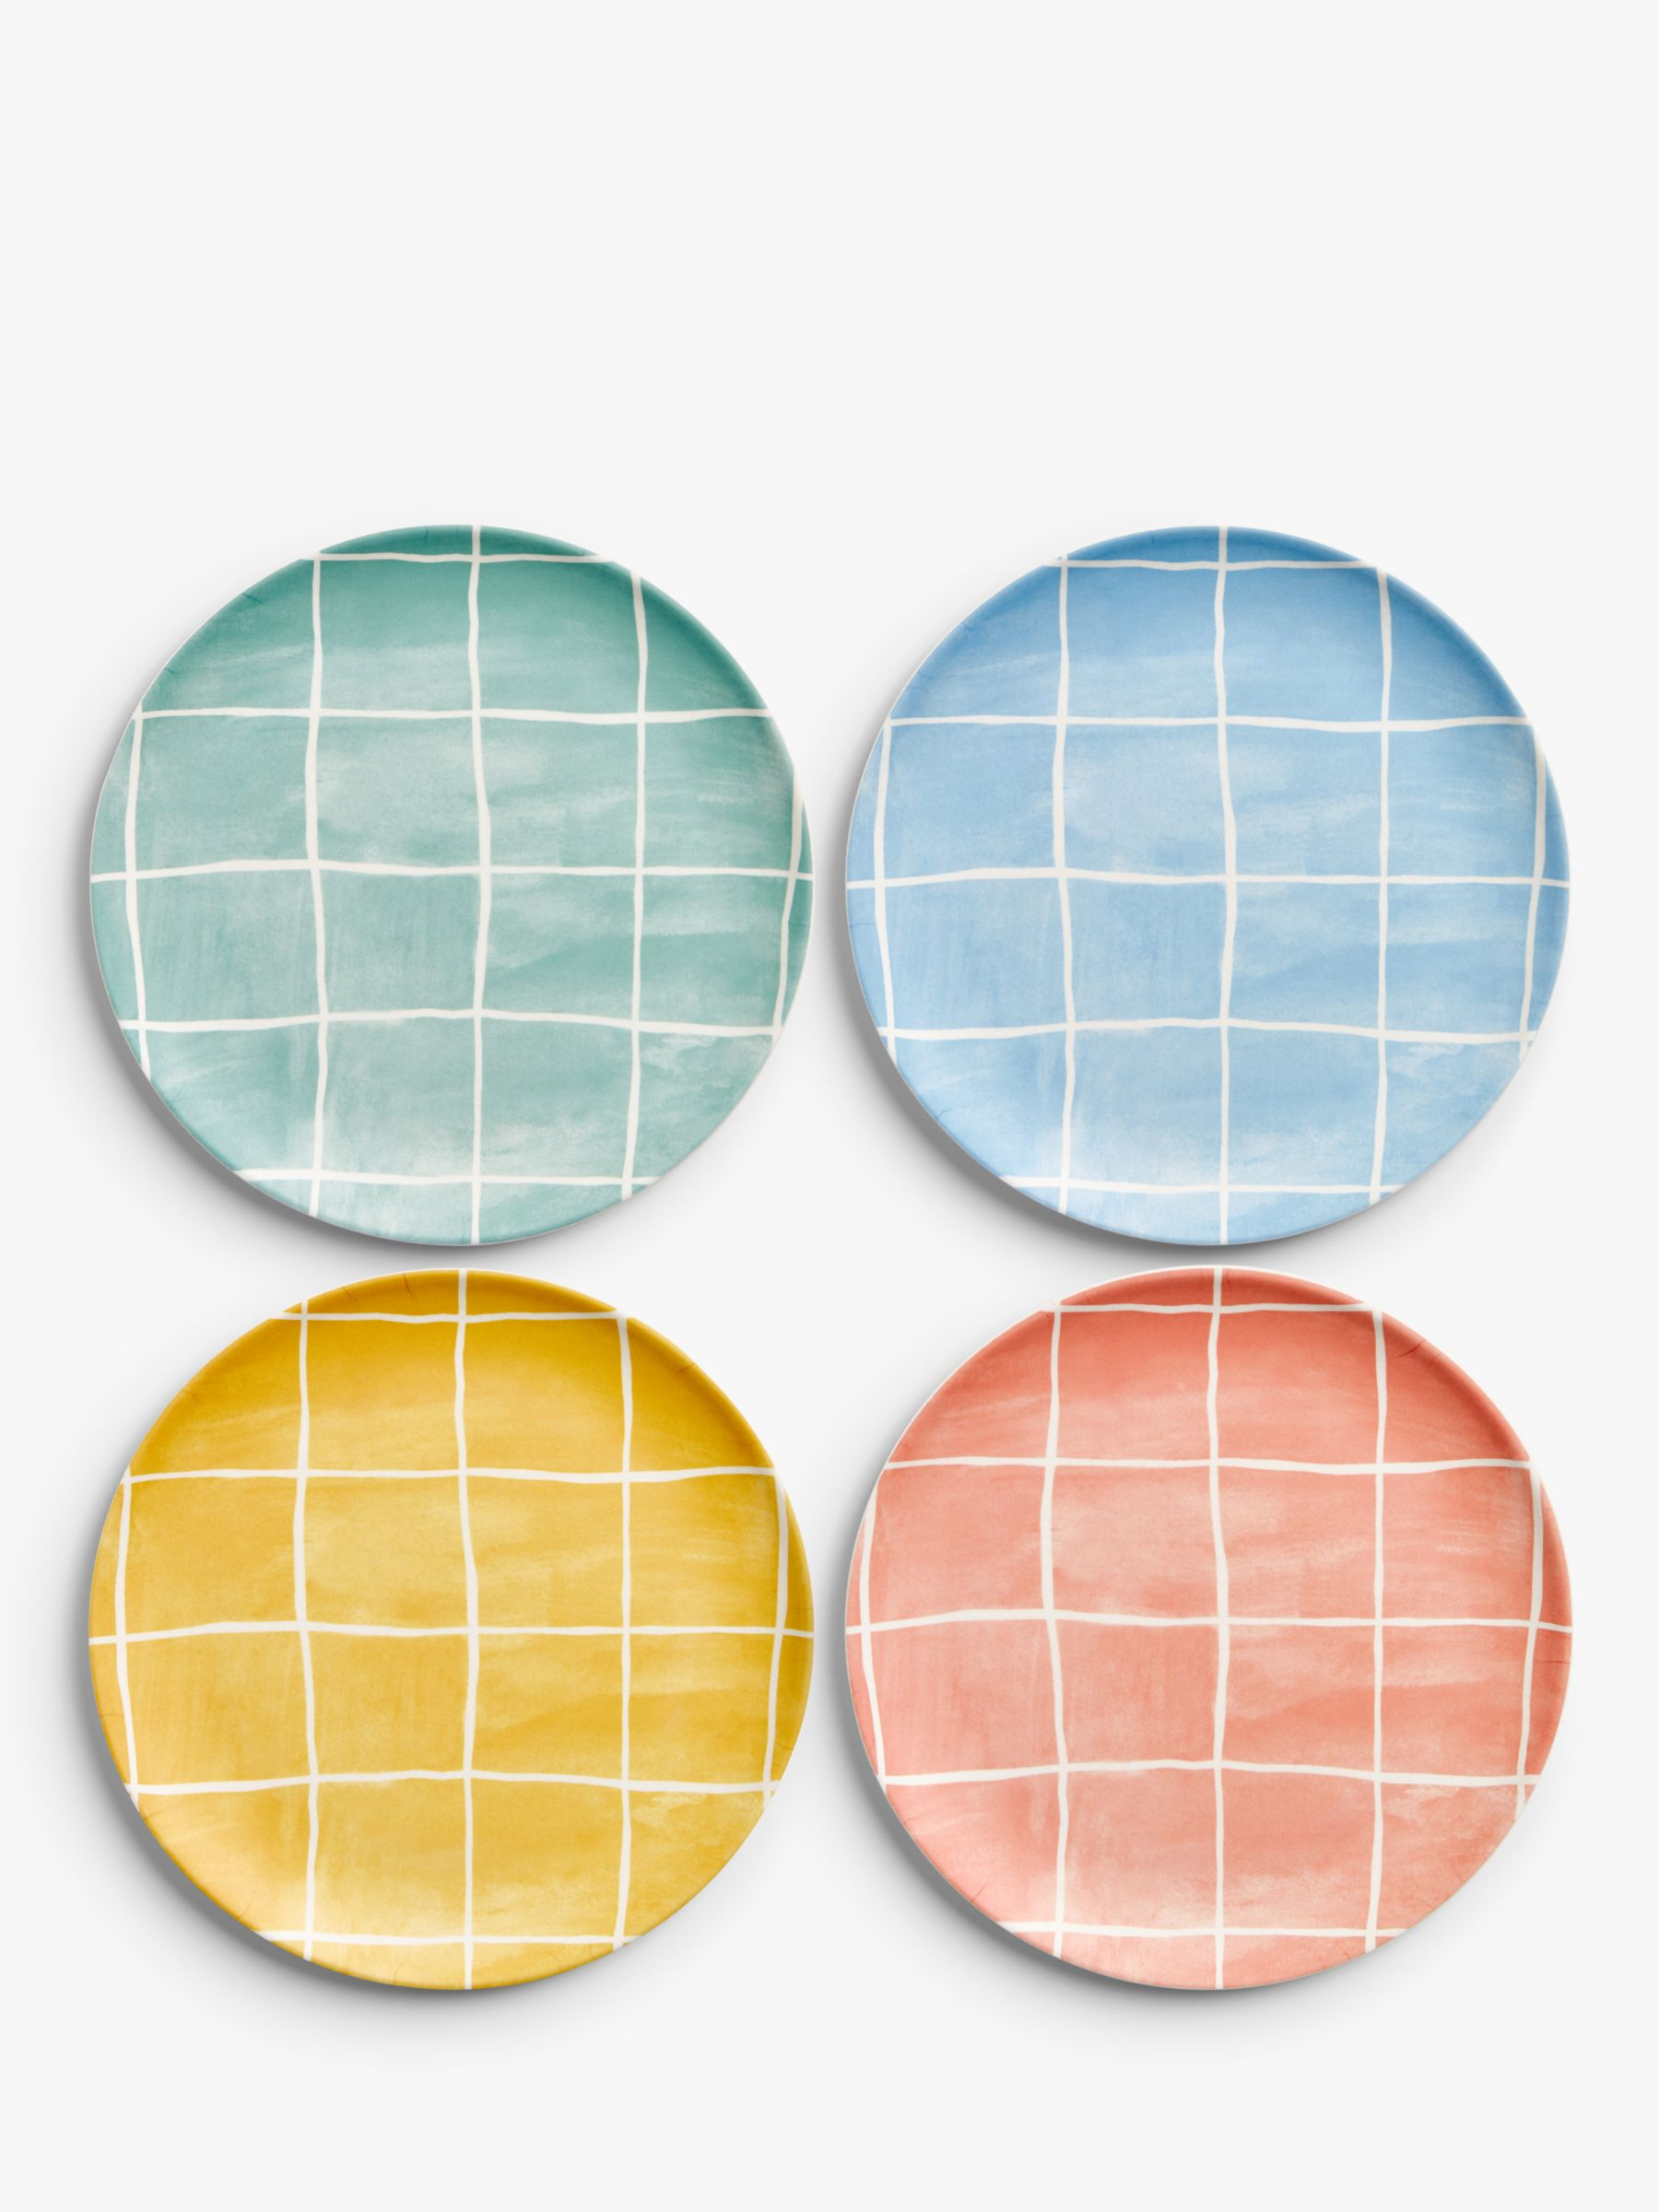 John Lewis & Partners Bamboo Picnic Patterned Side Plates, Set of 4, 20cm, Assorted